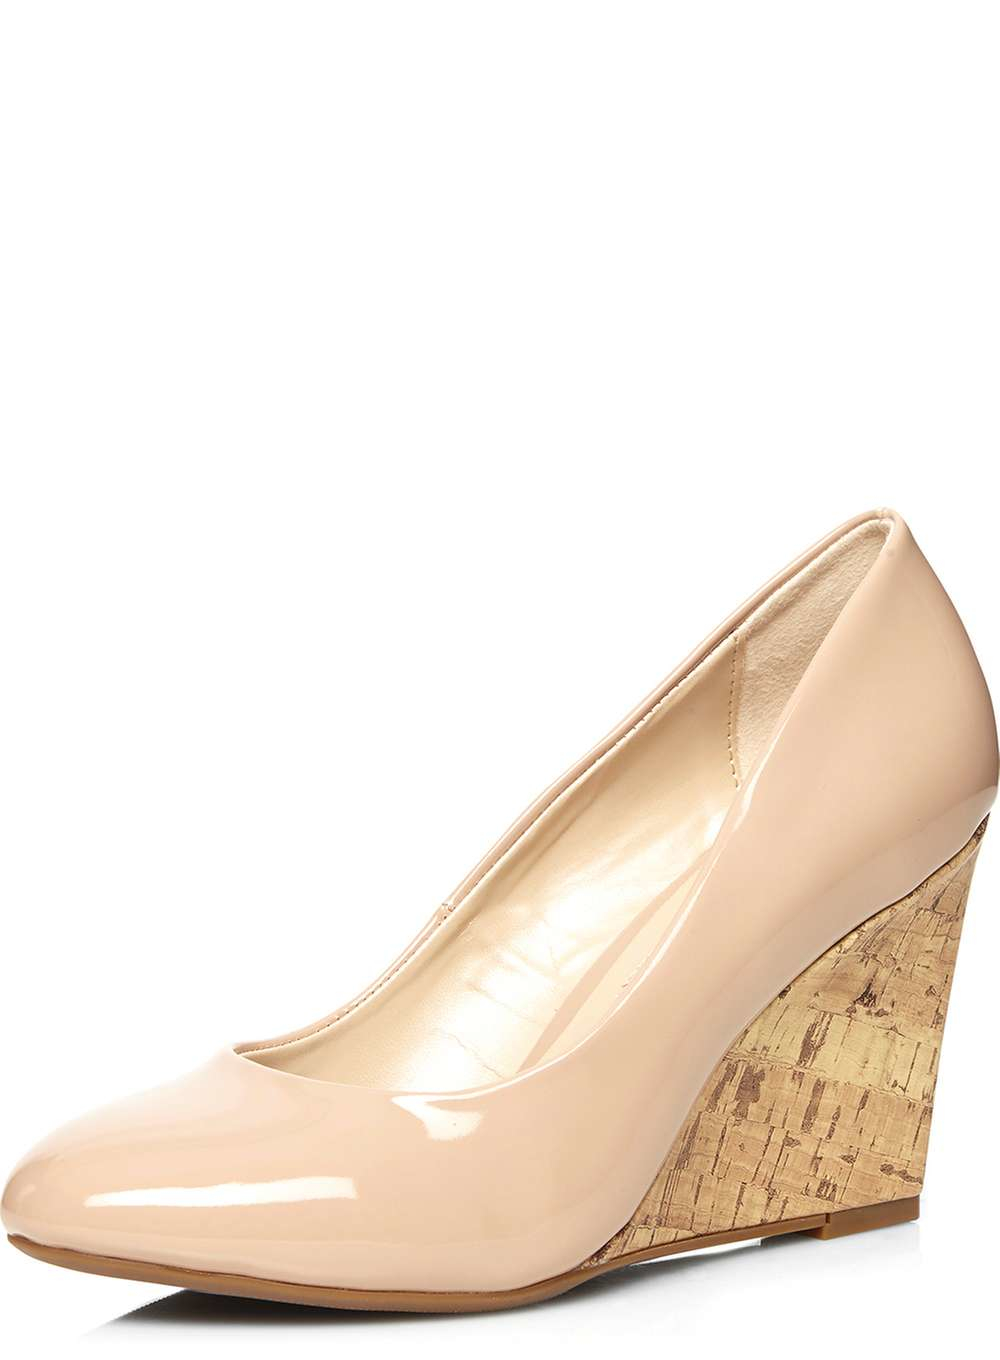 dorothy perkins blush wedge court shoes in pink lyst